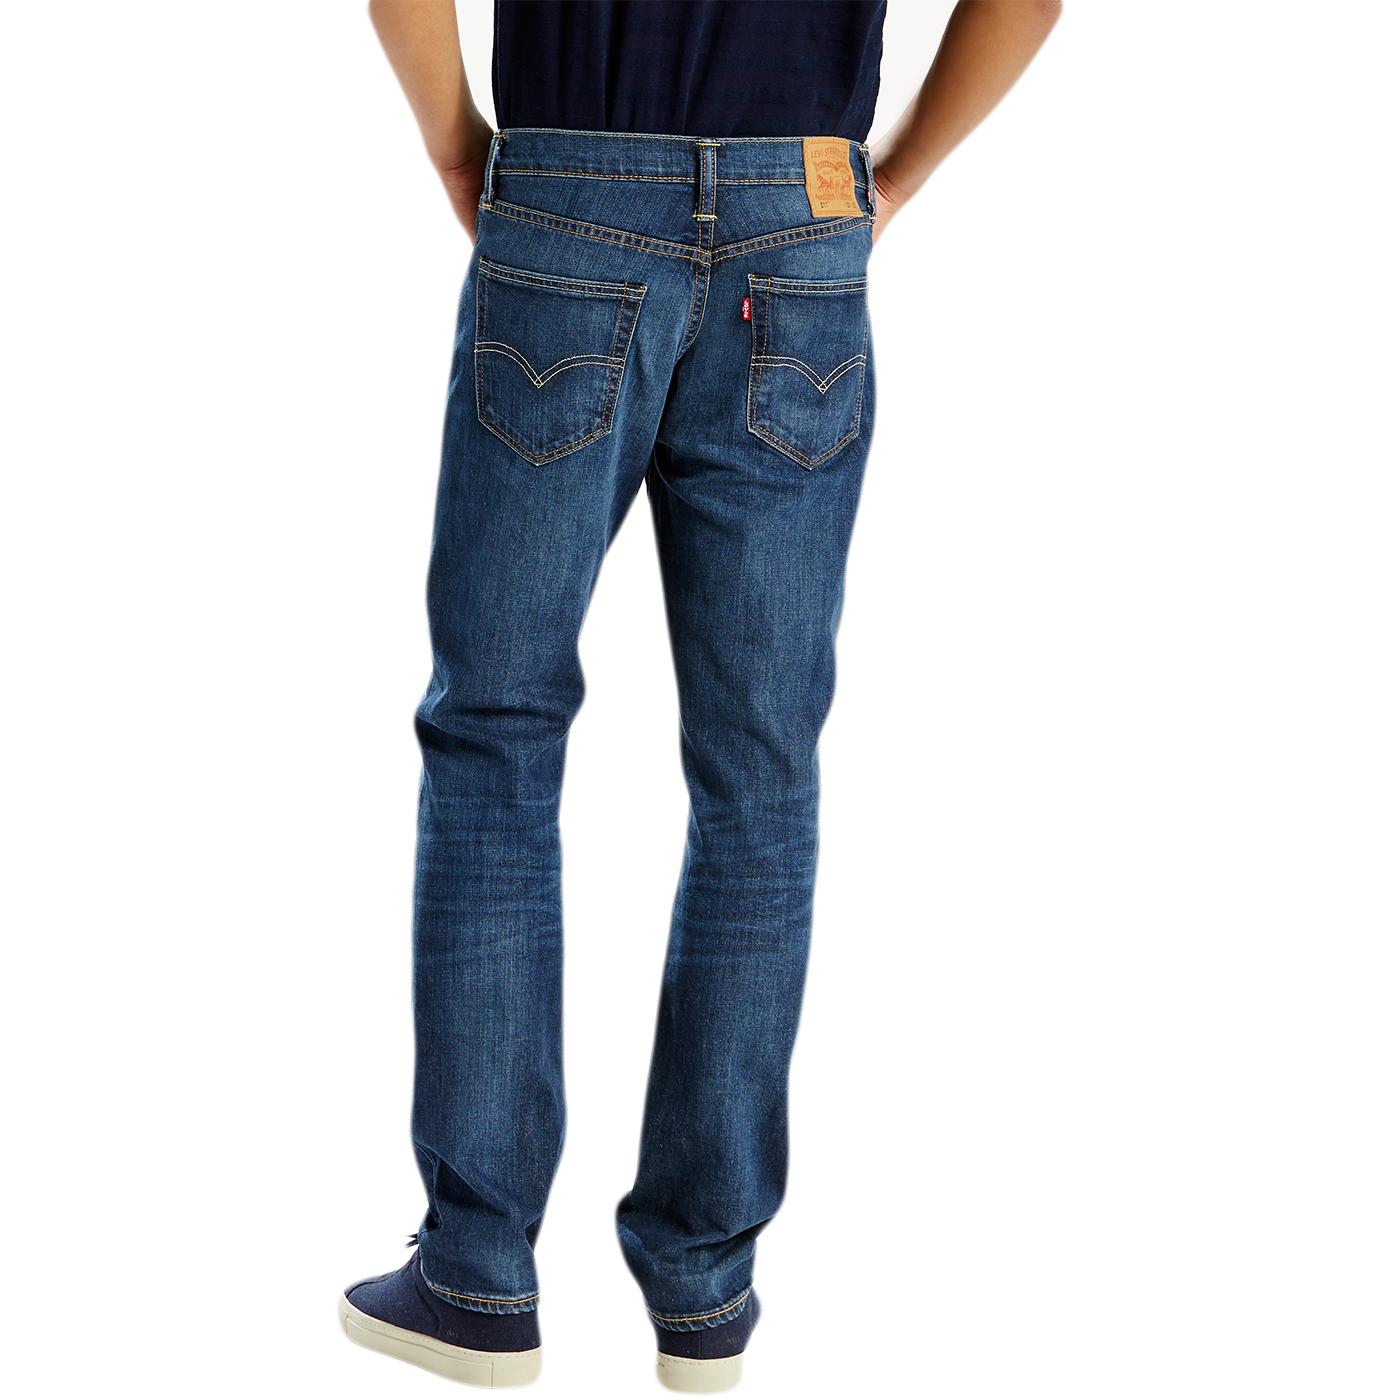 Buy Mens North Jogger Pants from Voi Jeans at Get The Label for £ Shop Men's clothes and footwear from big brands at amazing discounted prices at Get The Label. Accept cookie policy. This site uses cookies. By continuing to browse this site you are agreeing to our use of cookies.